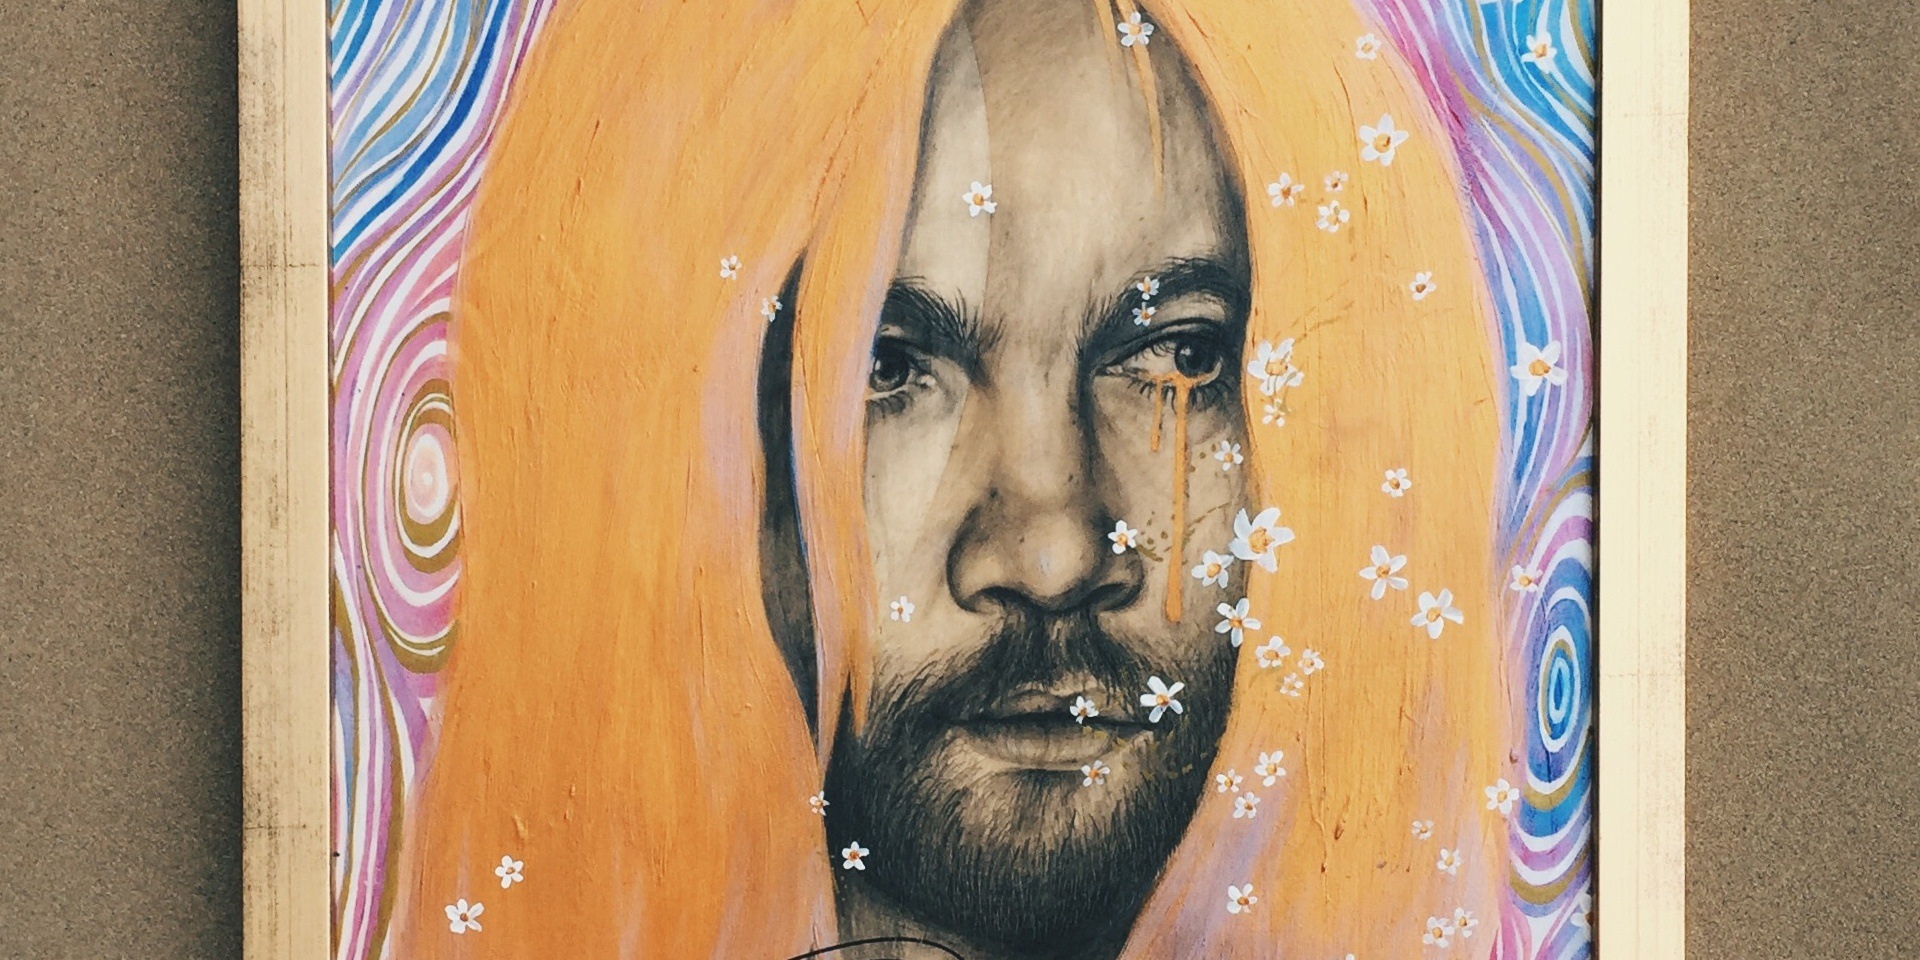 CONTEST: Win a signed portrait of Tame Impala's Kevin Parker by Samantha Rui